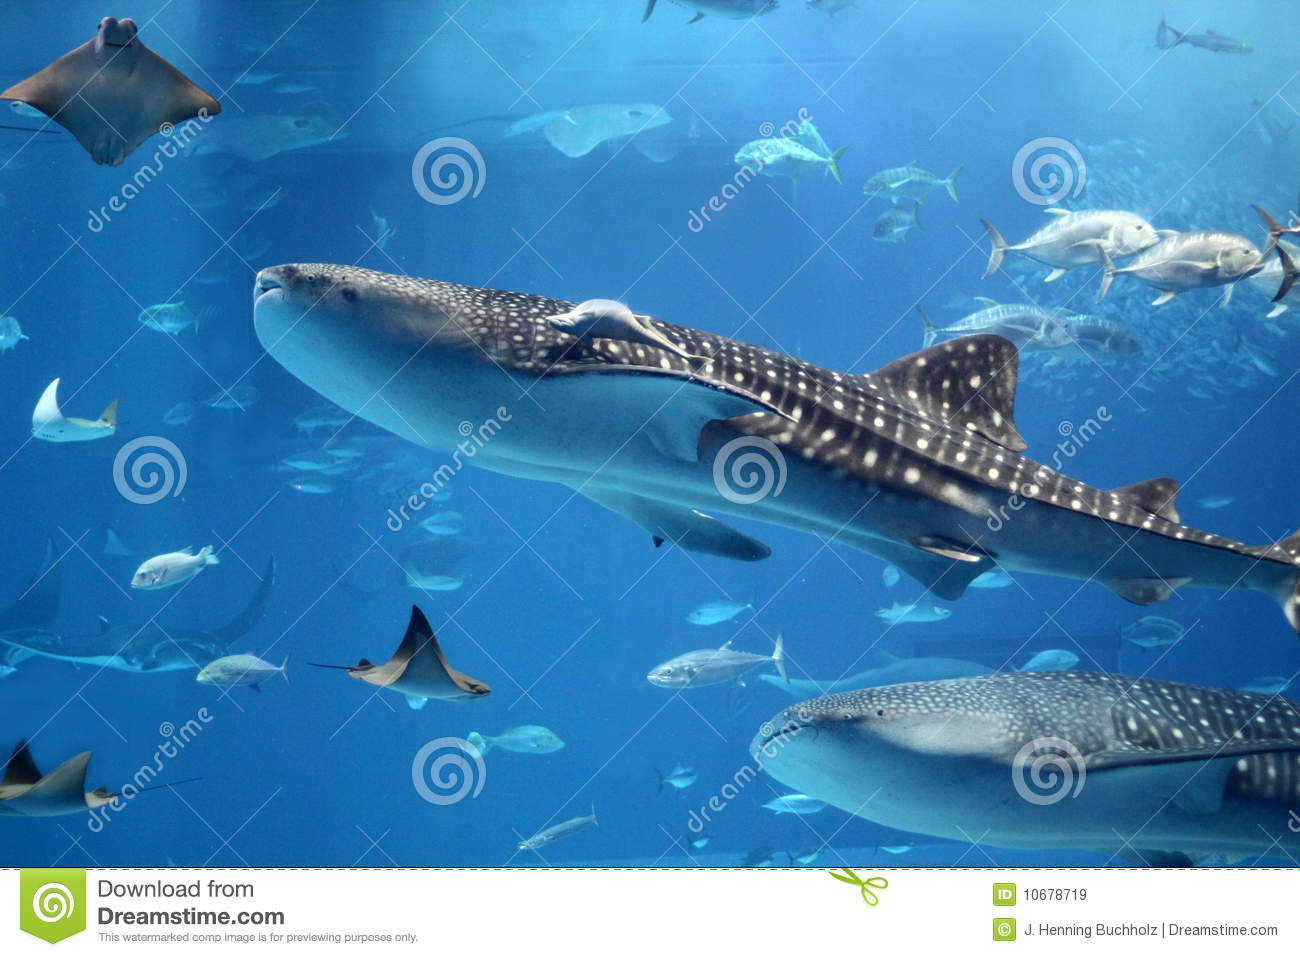 Giant Whale Shark http://www.dreamstime.com/royalty-free-stock-images-giant-whale-shark-swimming-swarm-fish-image10678719